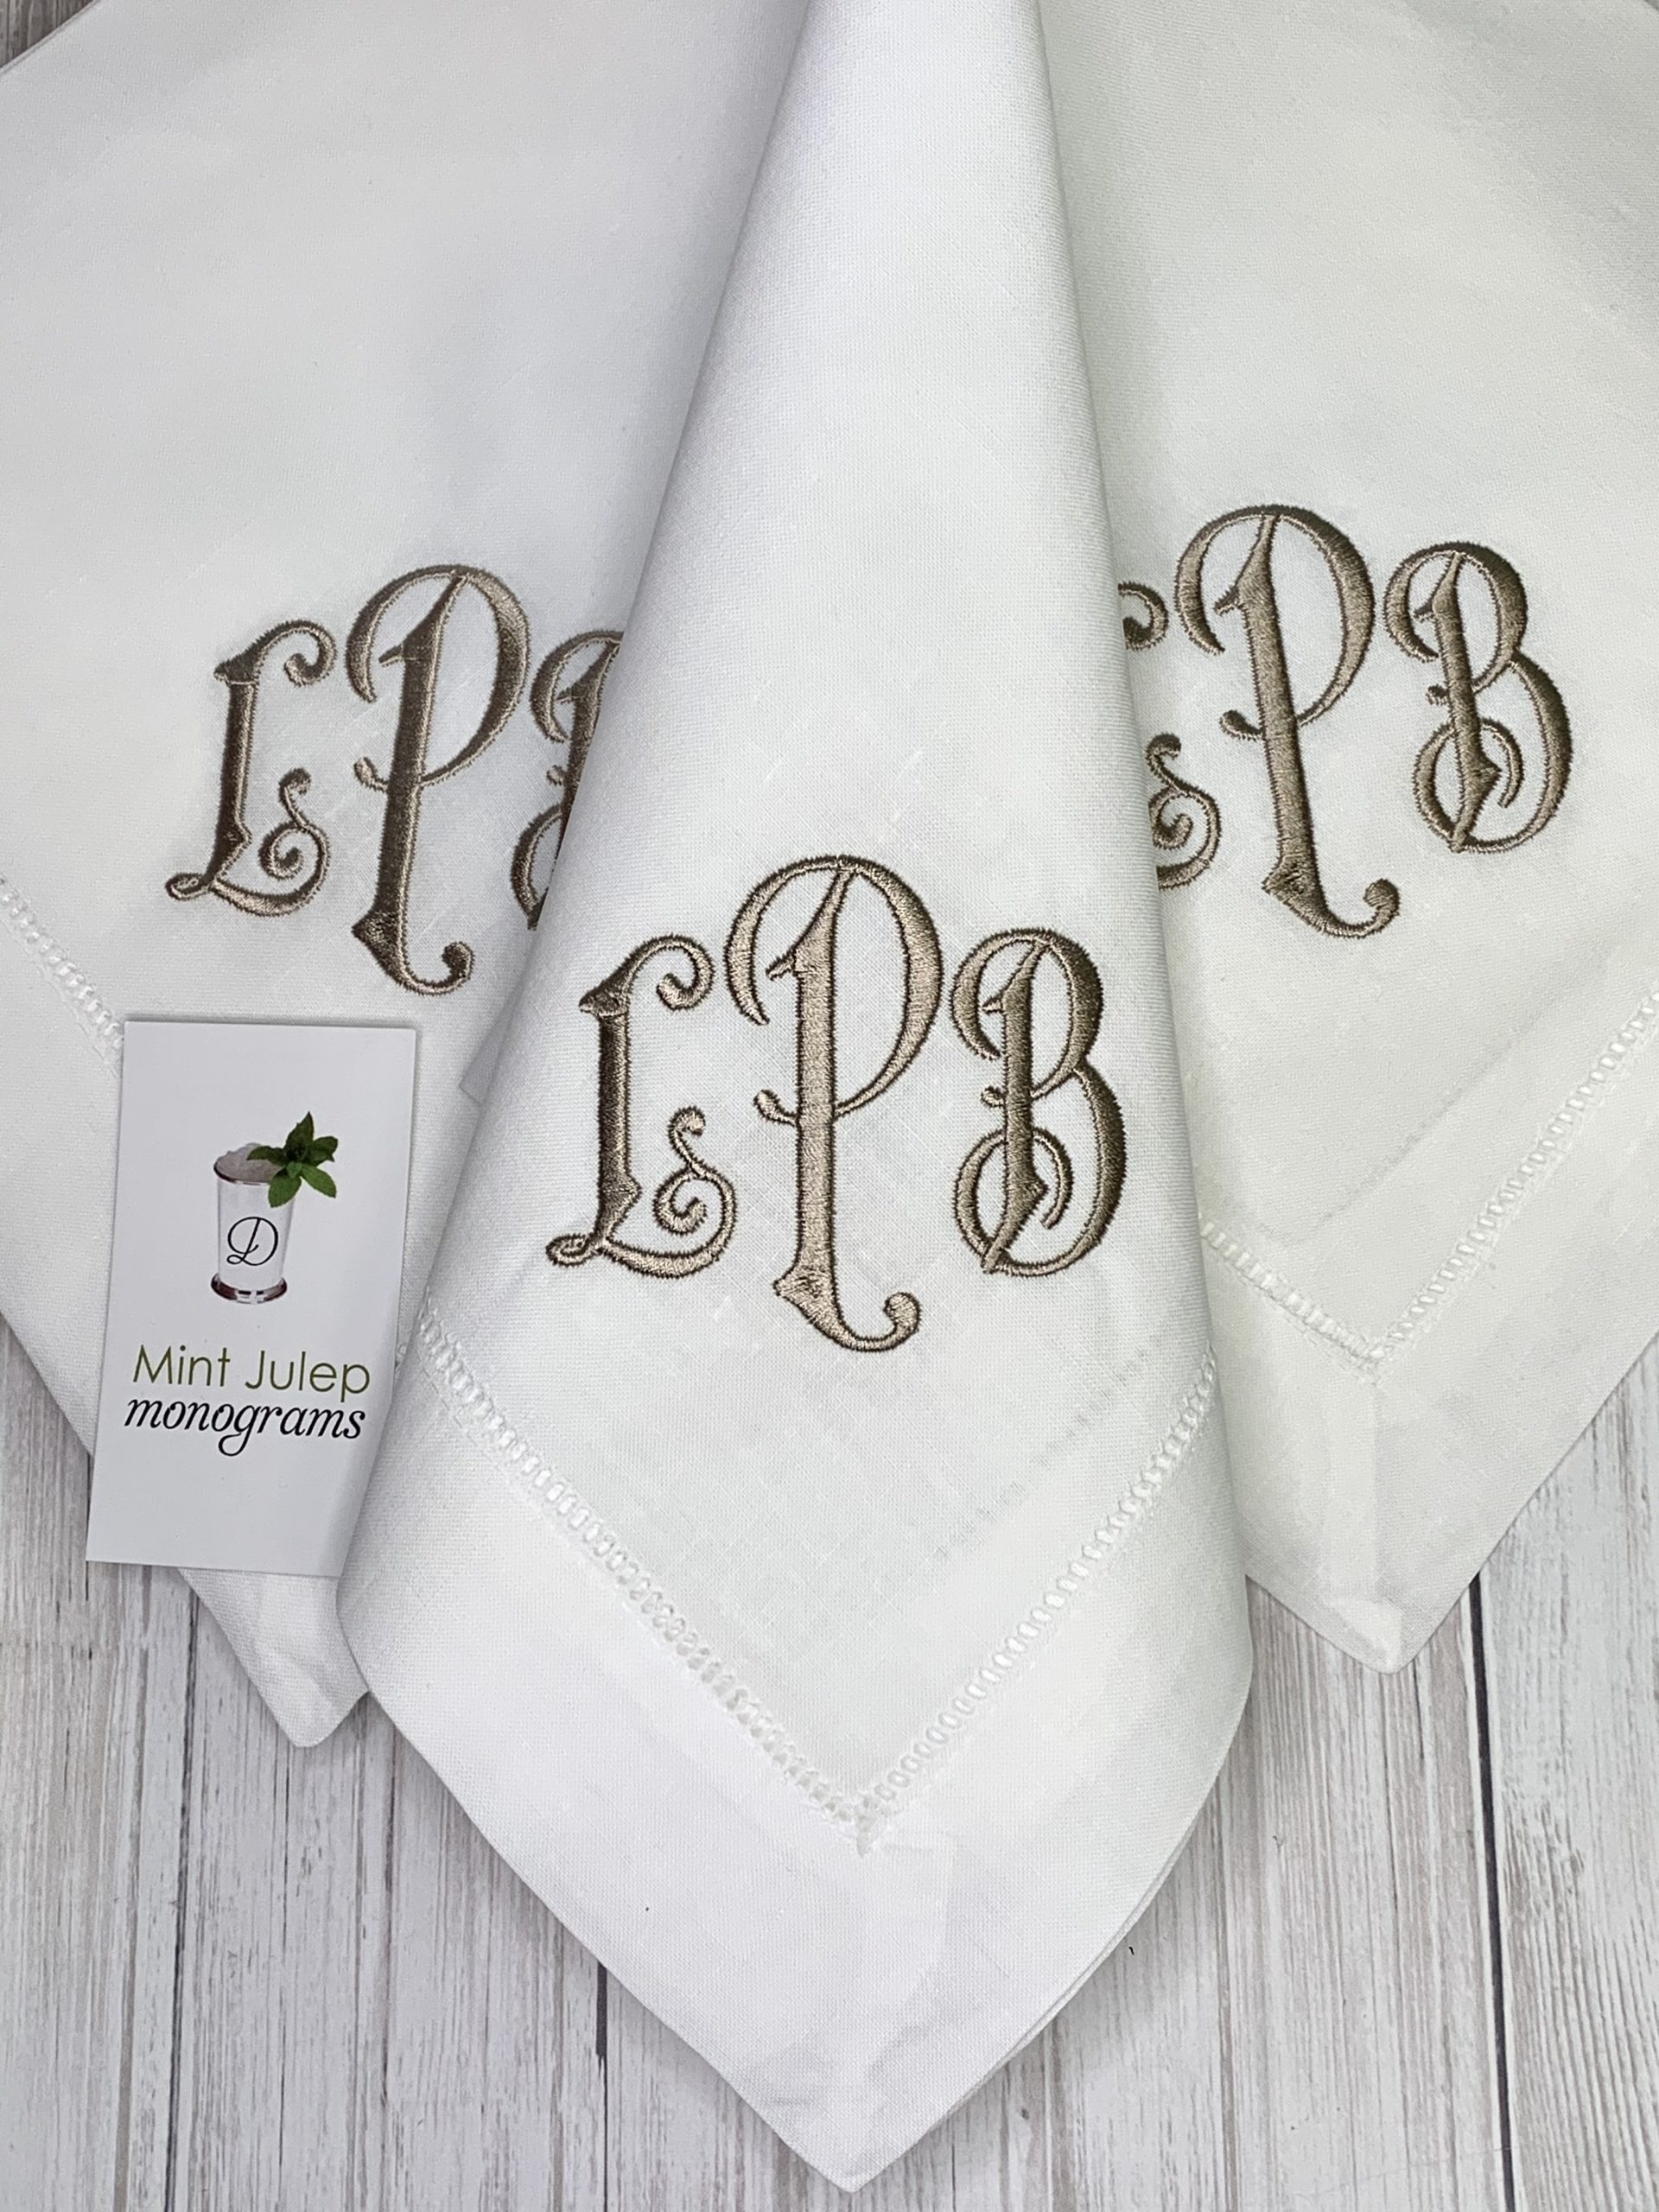 Monogrammed Shabby Chic Linen Napkins in 15 colors Stone Washed Linen Monogrammed  Napkins perfect for the Holidays